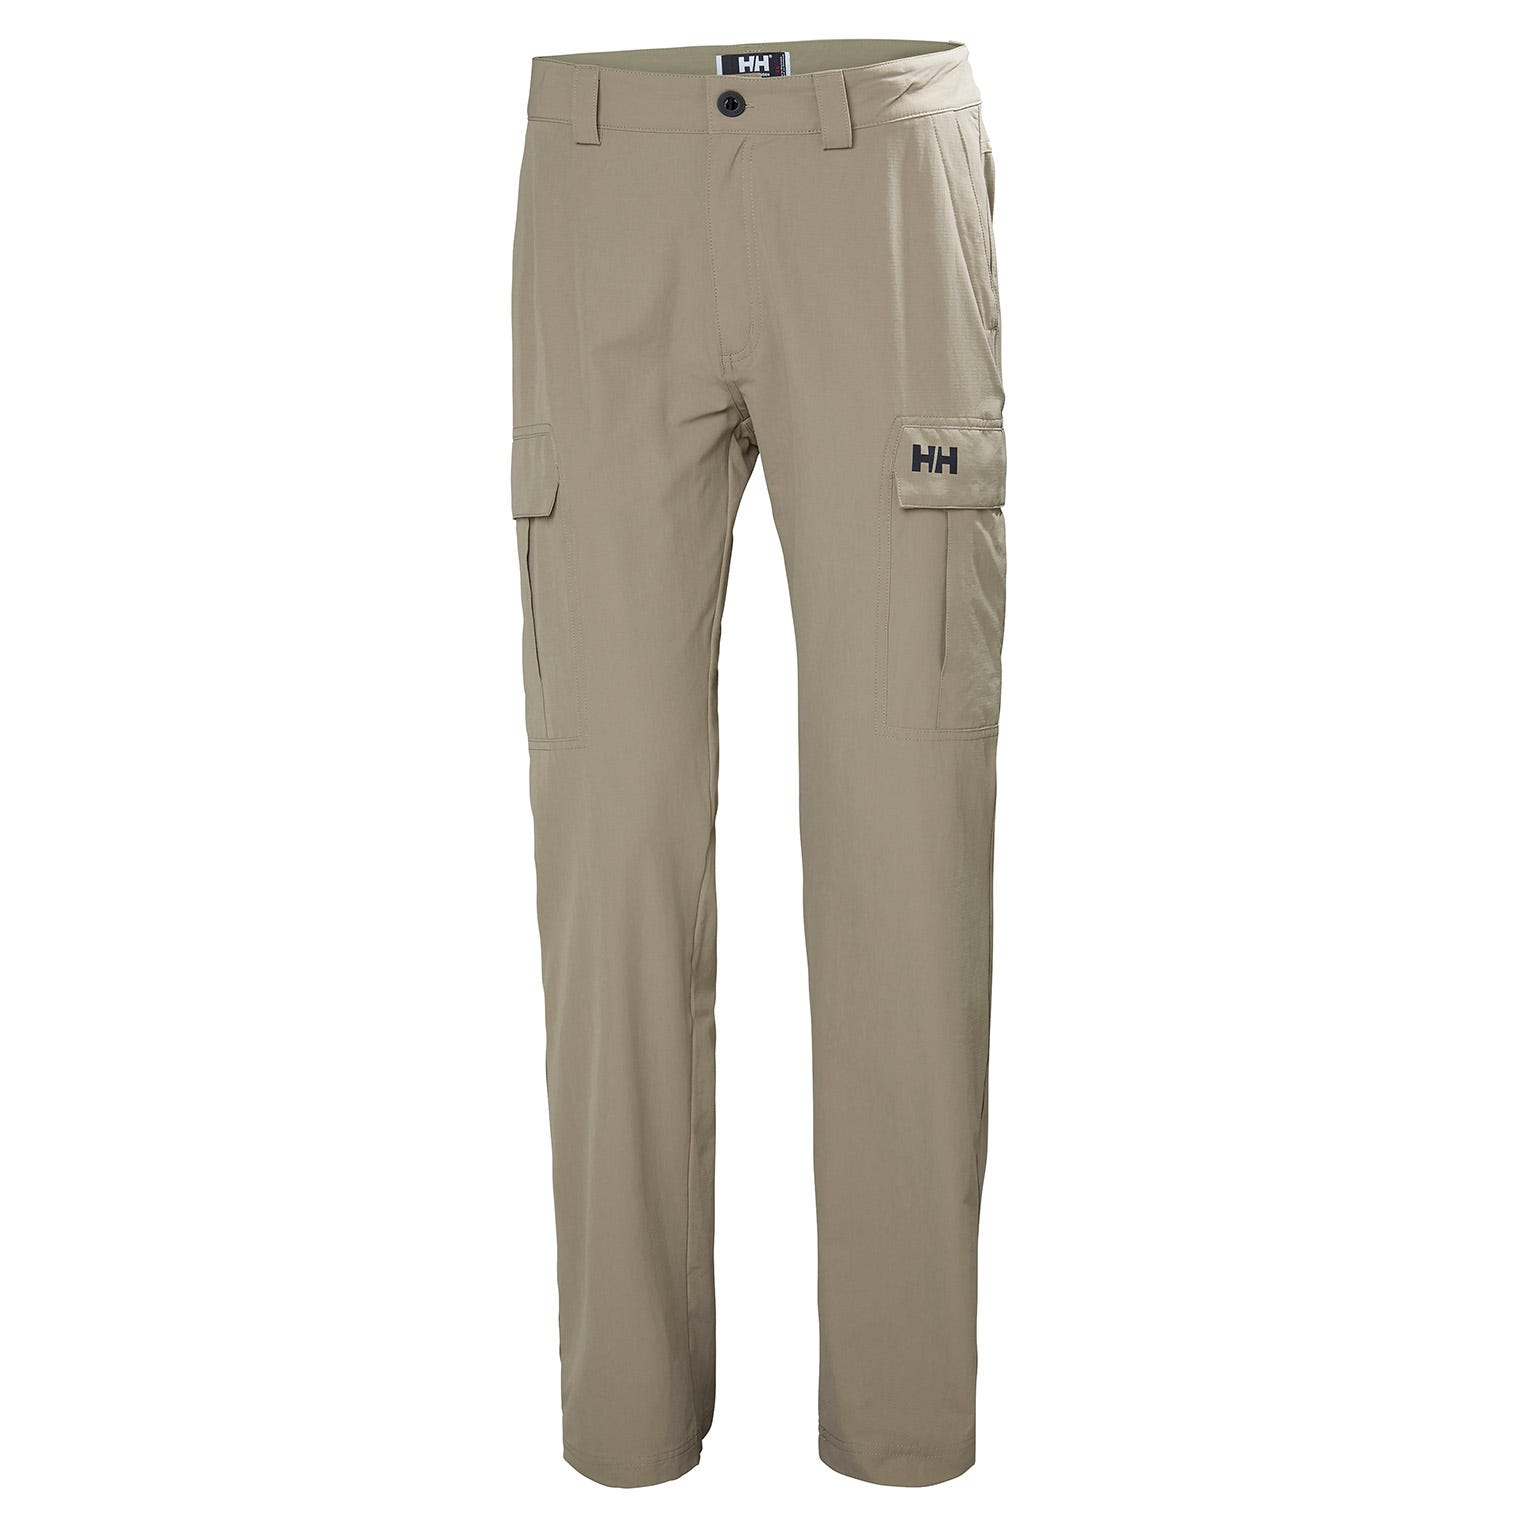 Helly Hansen Mens Qd Cargo Sailing Trouser Beige 28